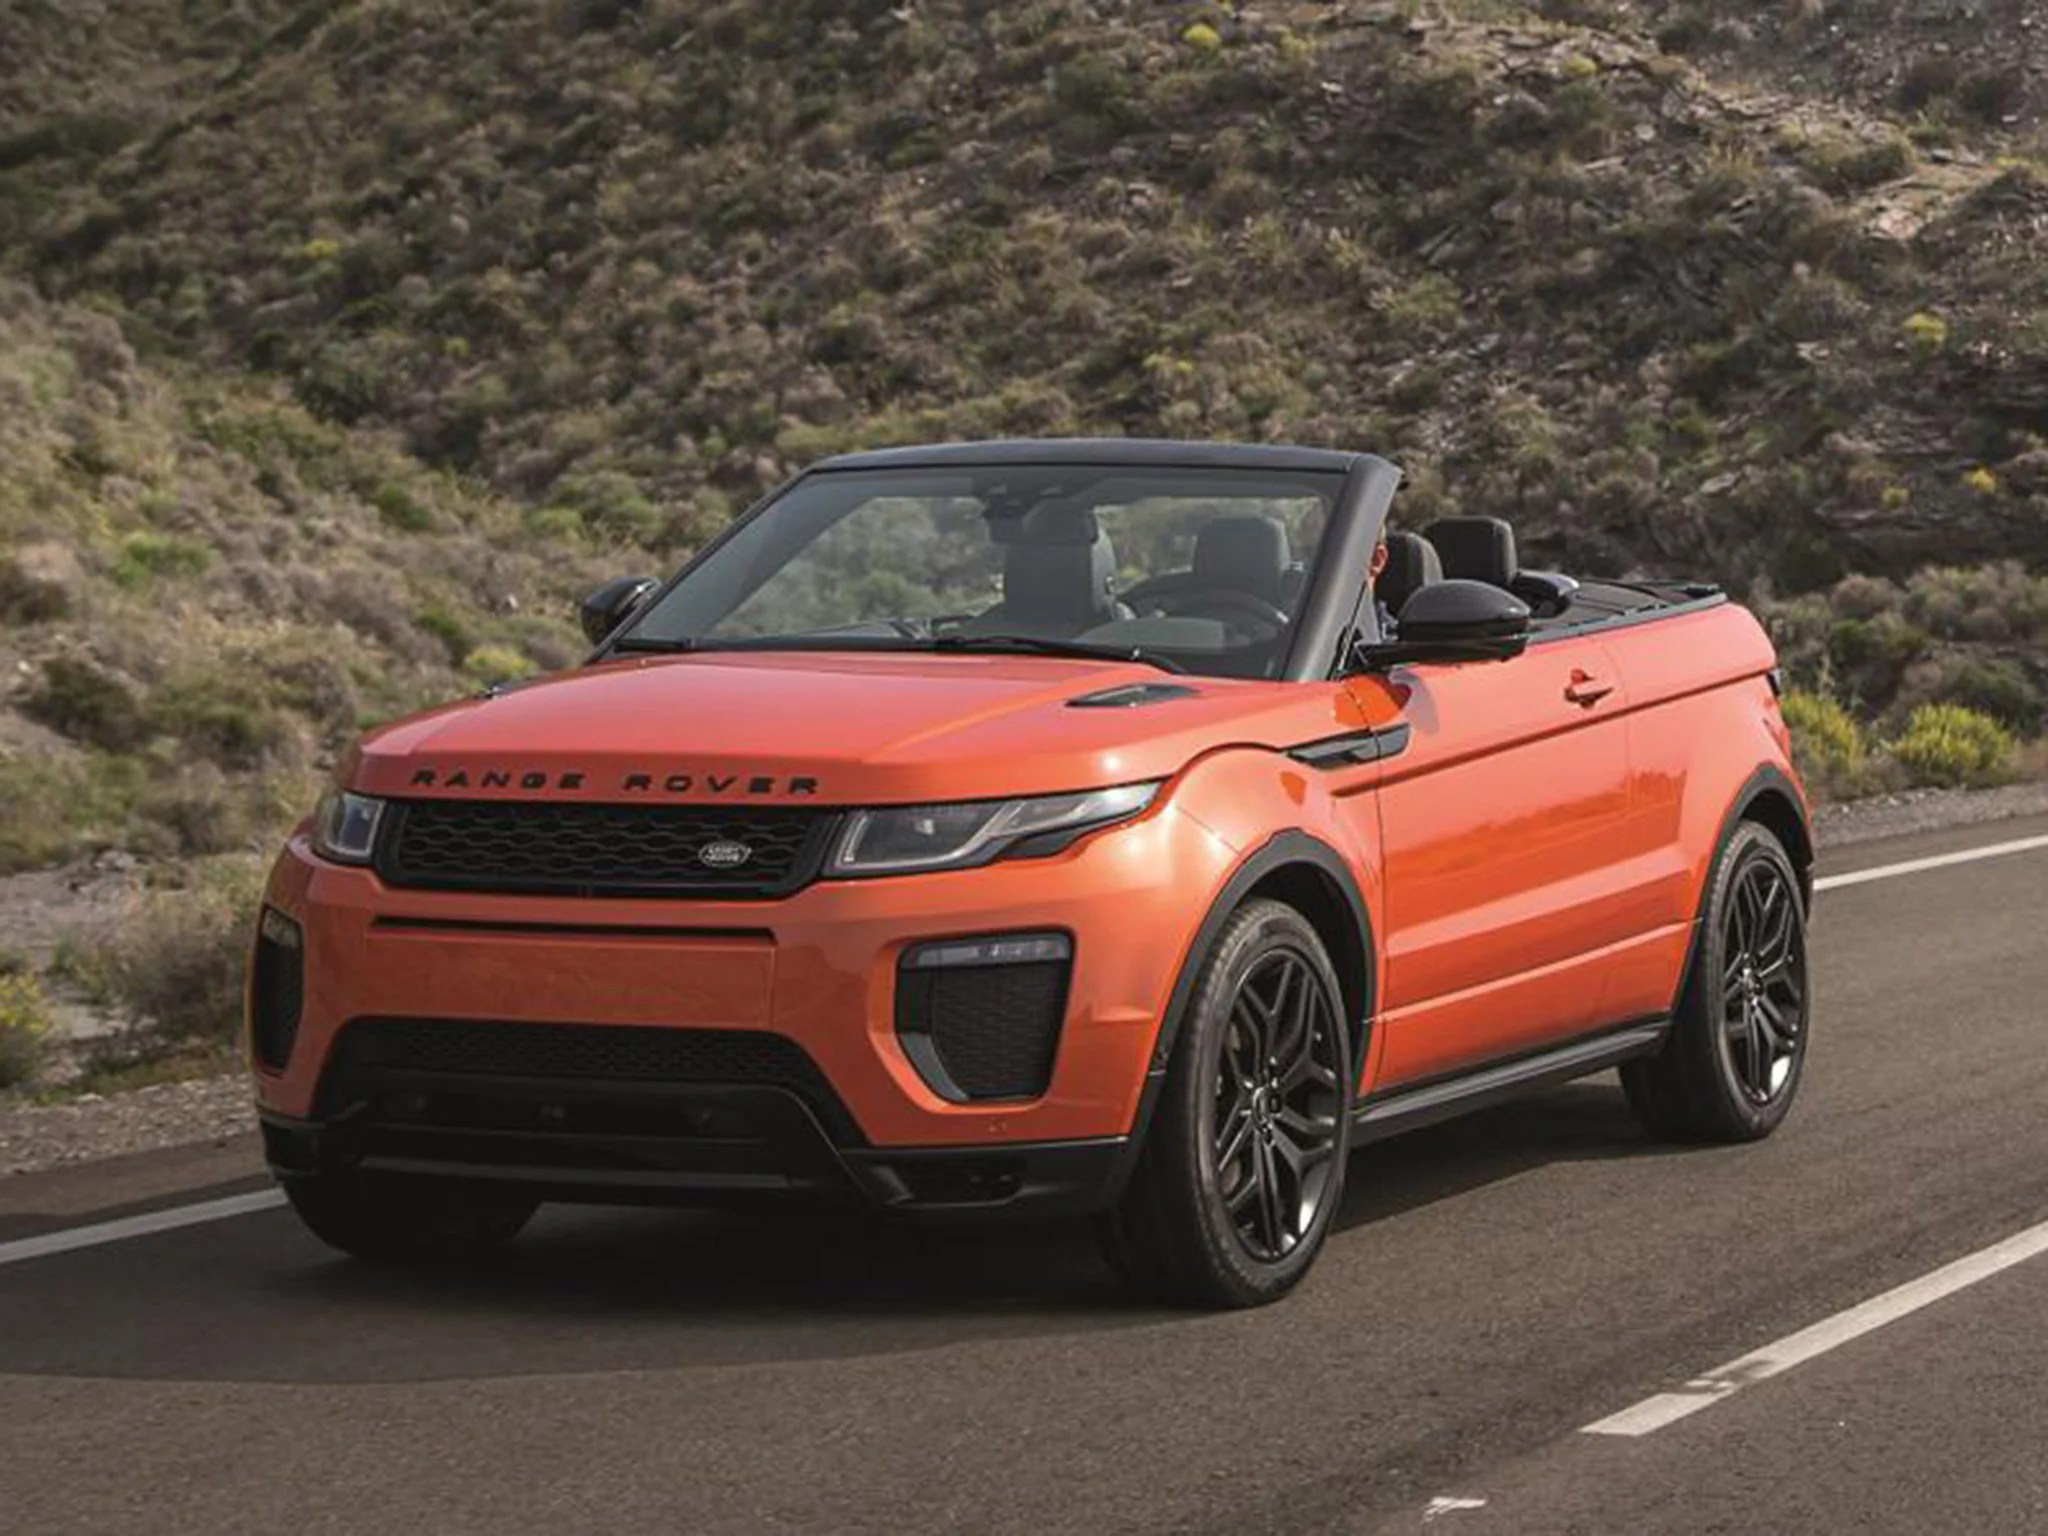 2016 Range Rover Evoque Convertible Prices revealed for its